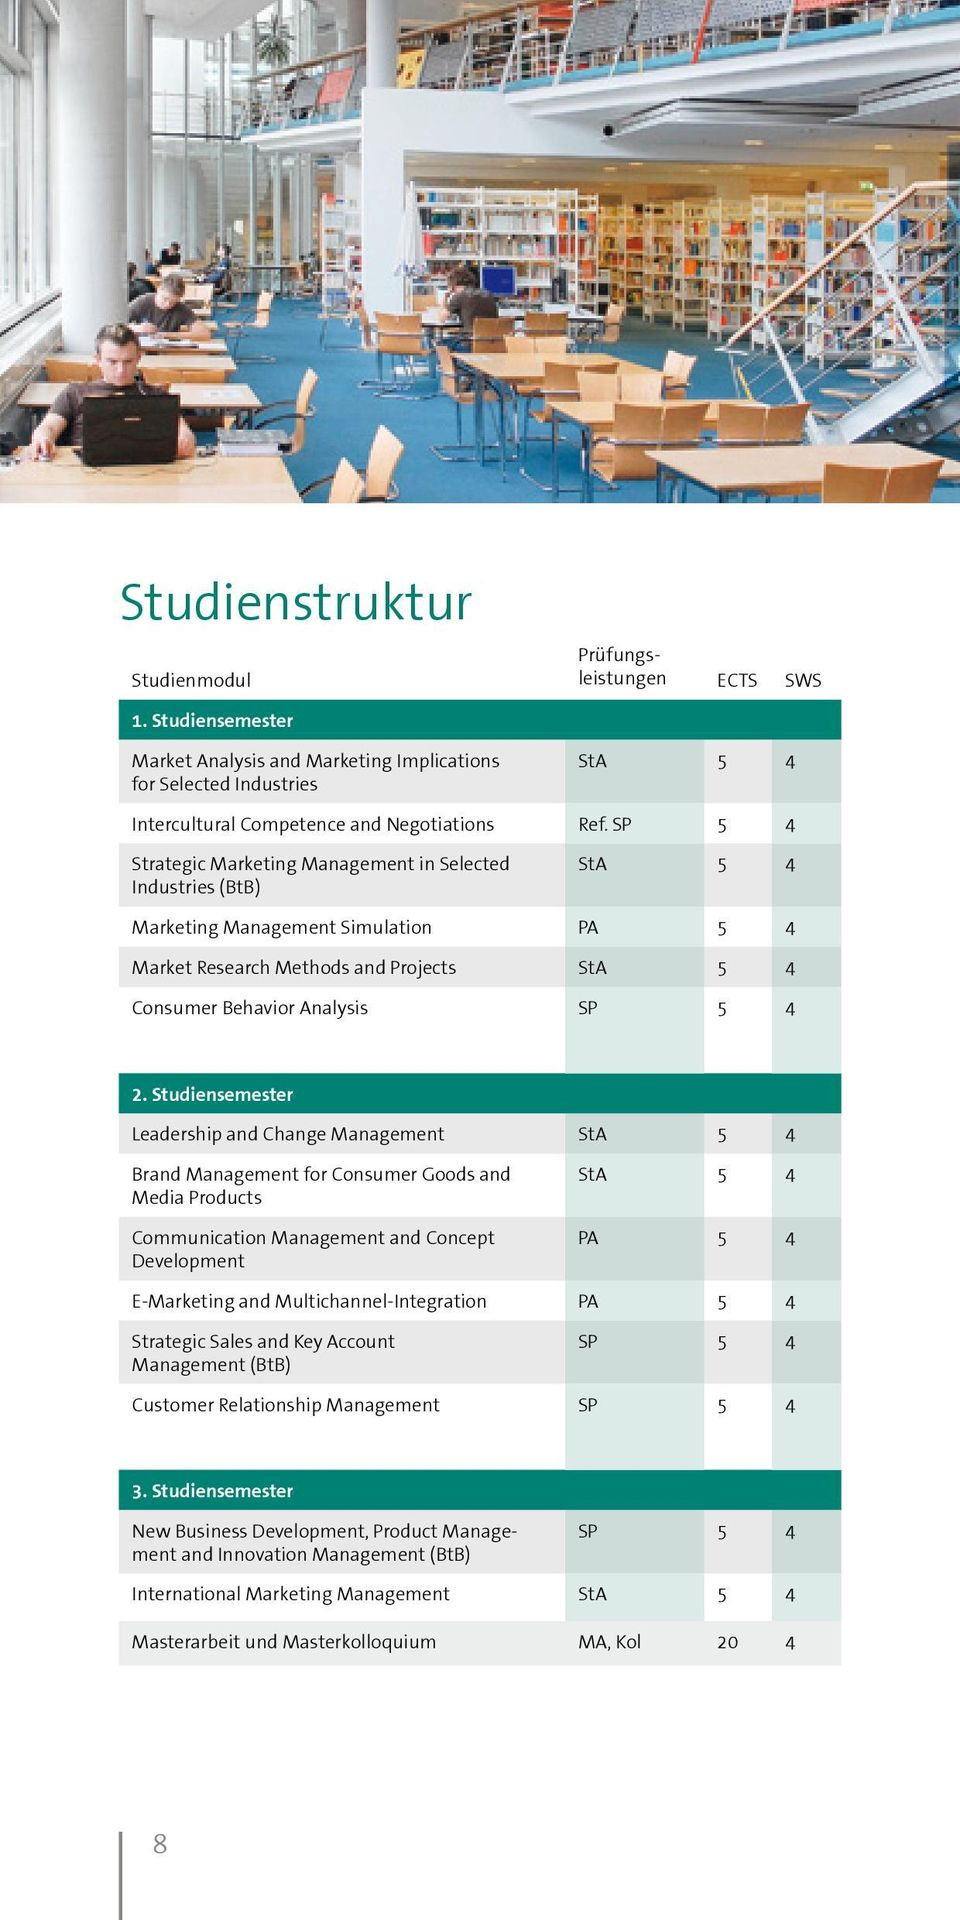 Studiensemester Leadership and Change Management StA 5 4 Brand Management for Consumer Goods and Media Products Communication Management and Concept Development StA 5 4 PA 5 4 E-Marketing and